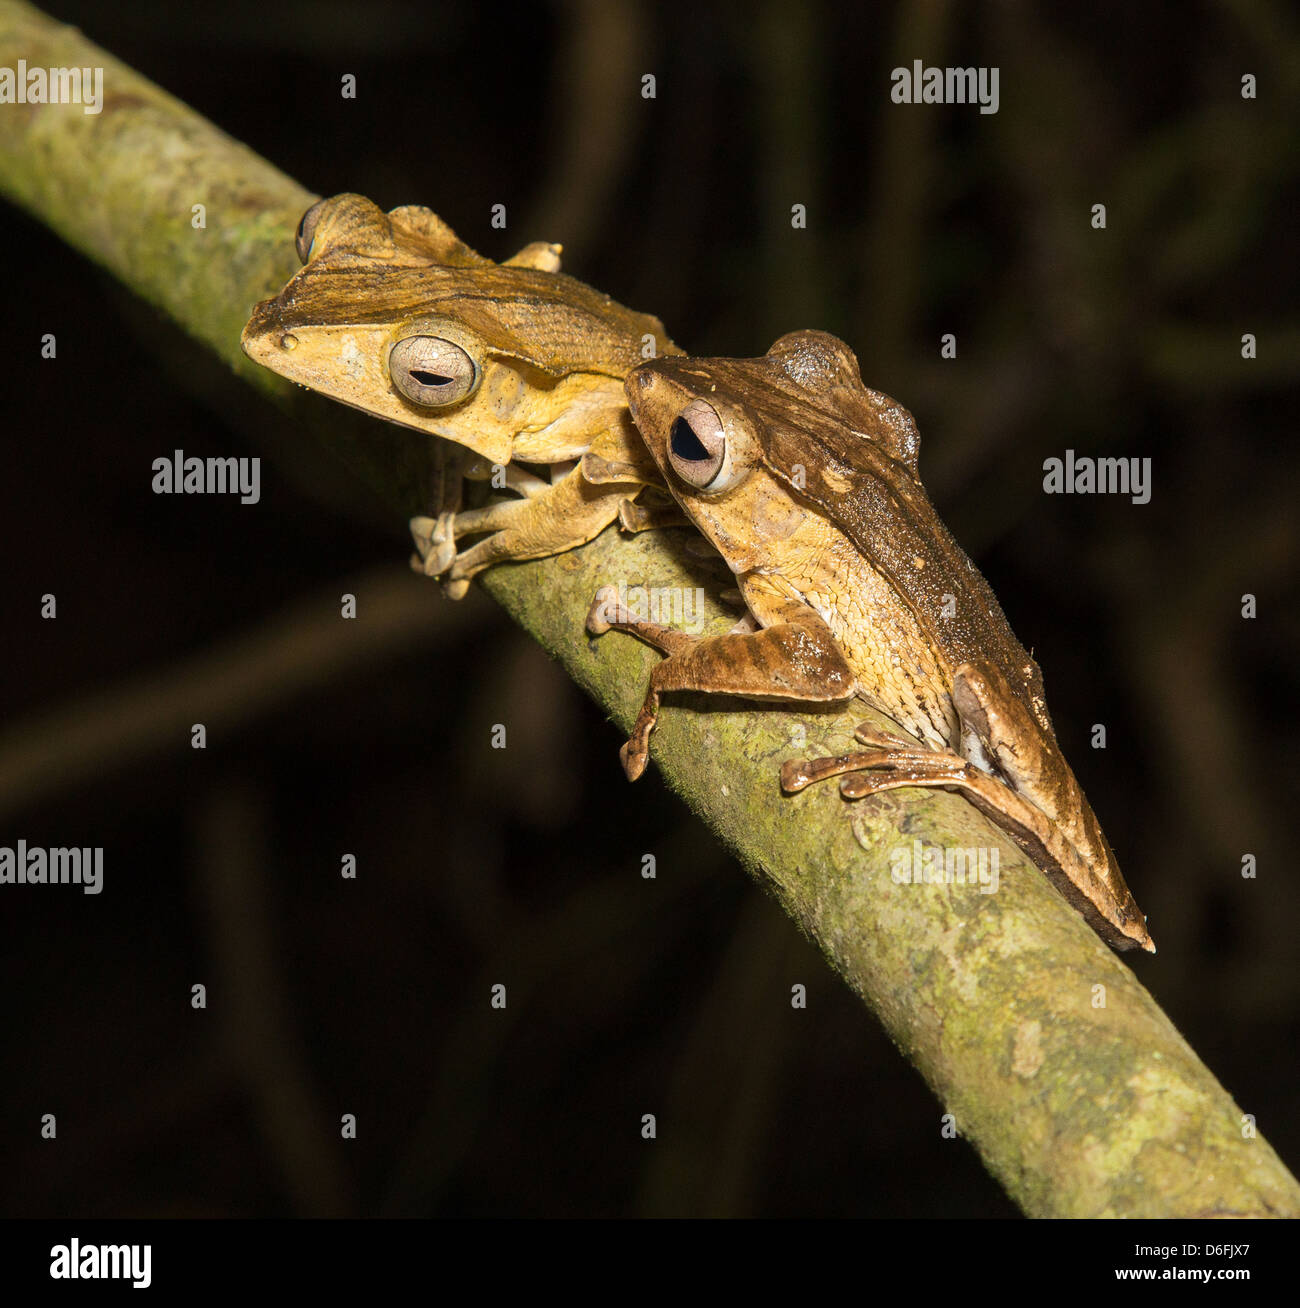 File Eared or Borneo Eared Tree Frog pair Polypedates otilophus on a tree branch  in the Danum Valley Sabah Borneo - Stock Image